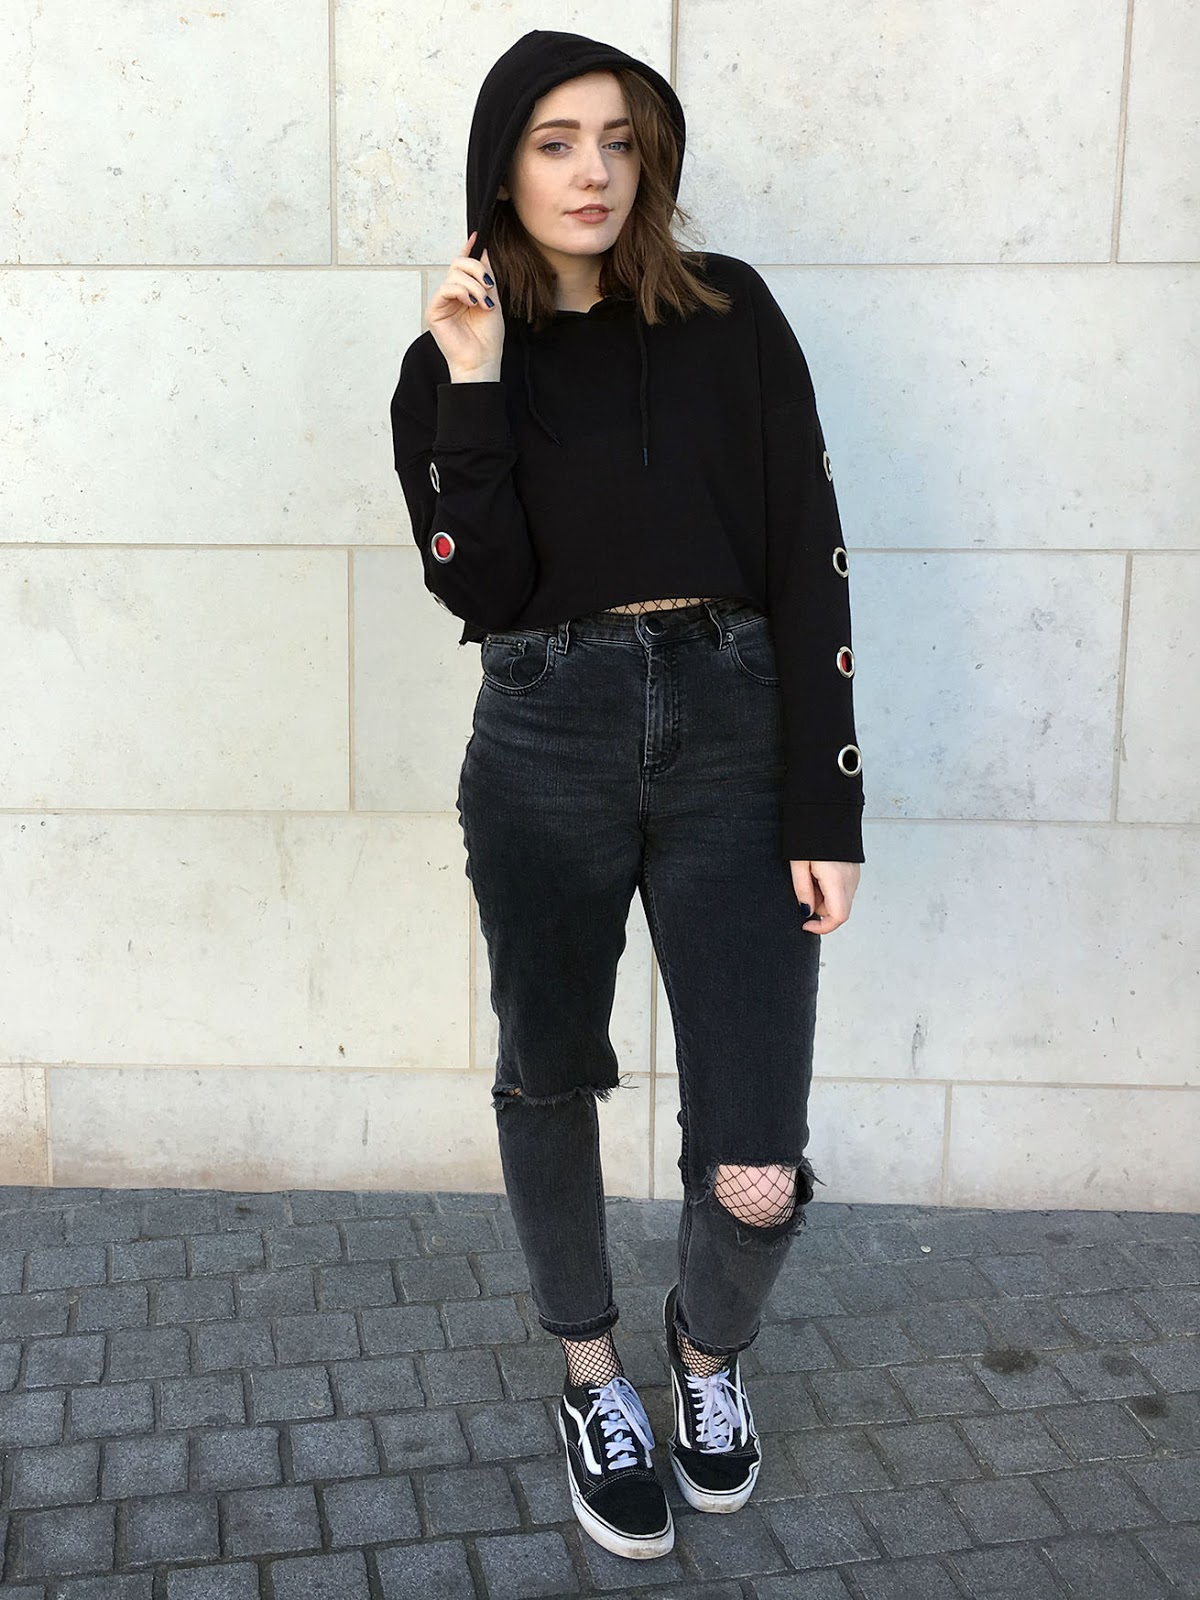 Liverpool blogger showing how to style a hoodie, plus asos farleigh jeans with fishnets underneath